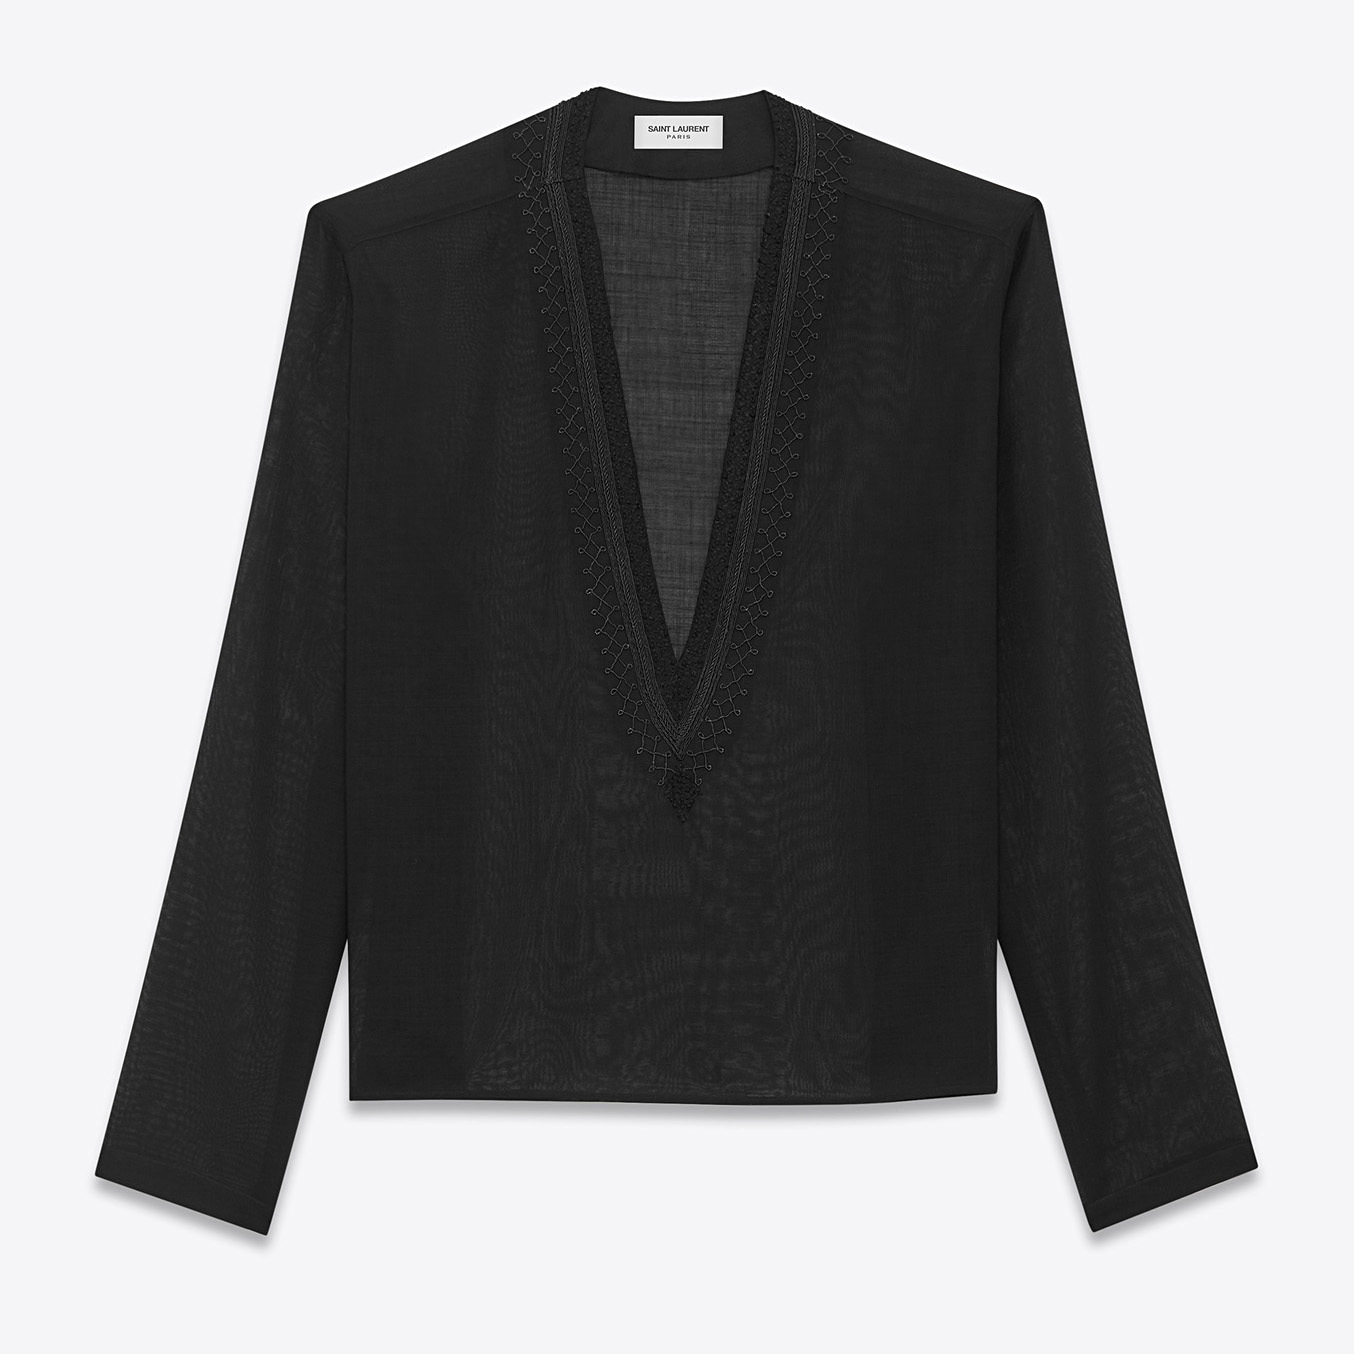 Saint Laurent Tunic With Ethnic Embroidered Neck In Black Wool Voile